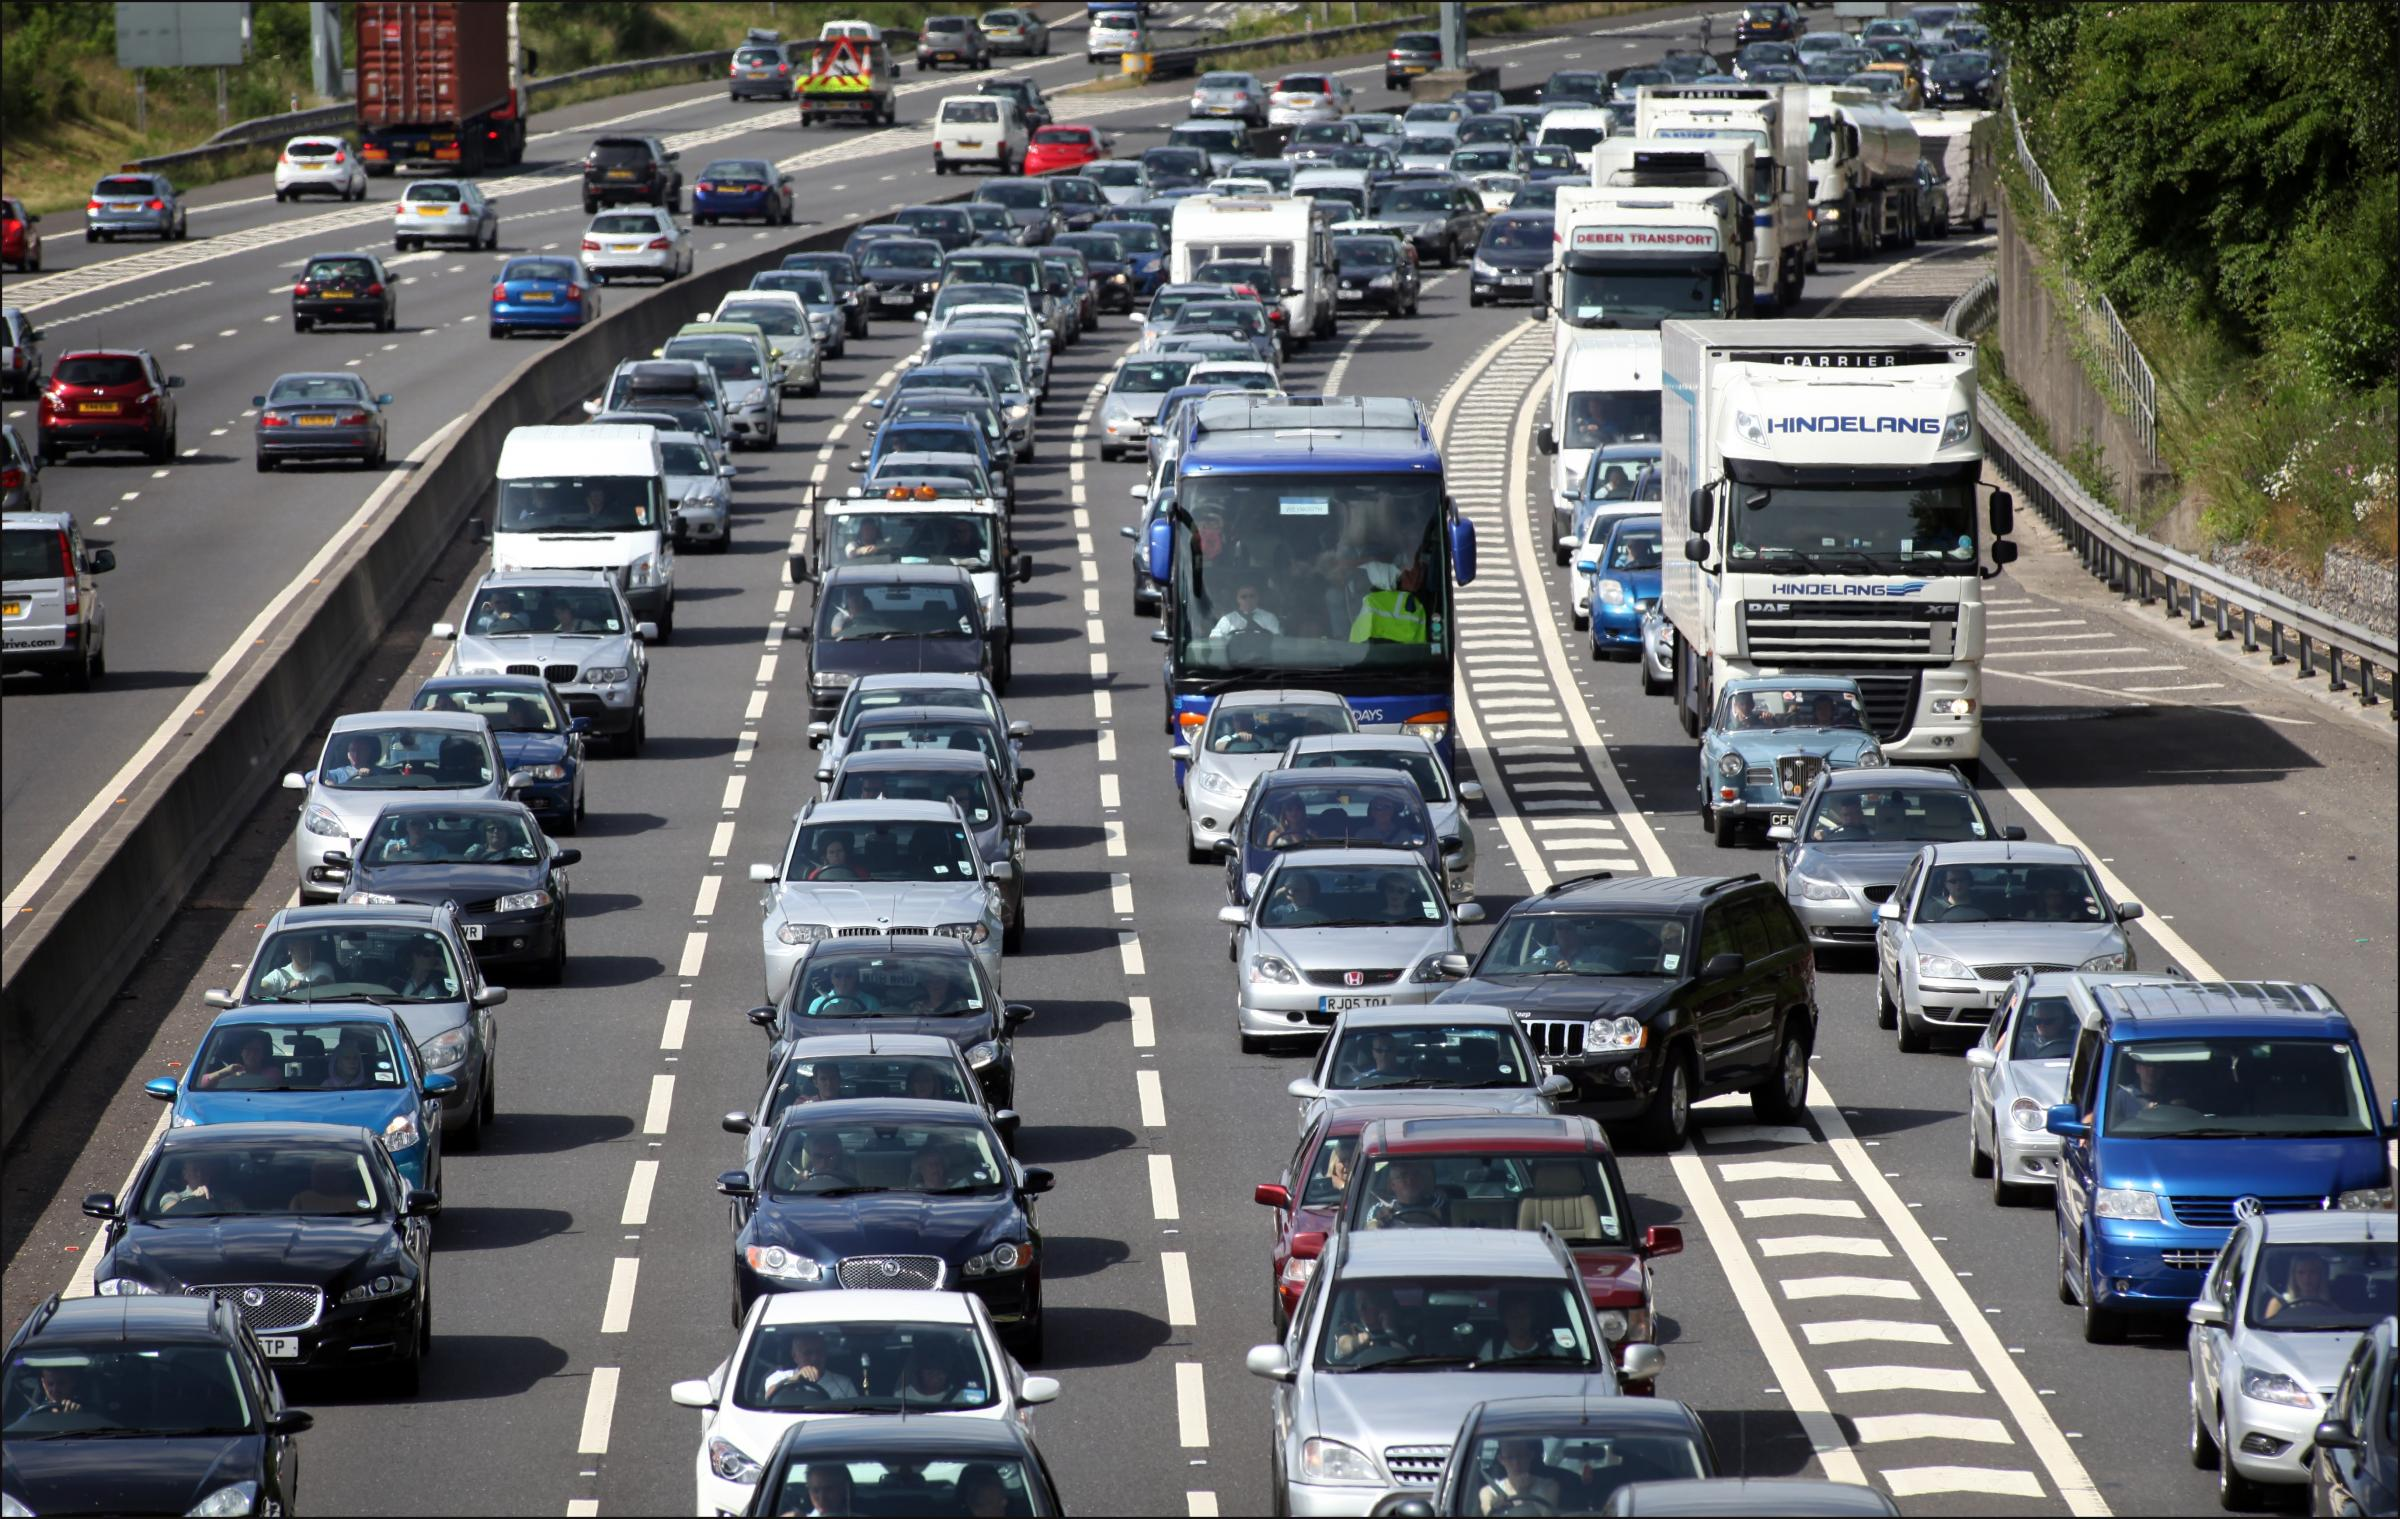 Motorway gridlock following multi car collision